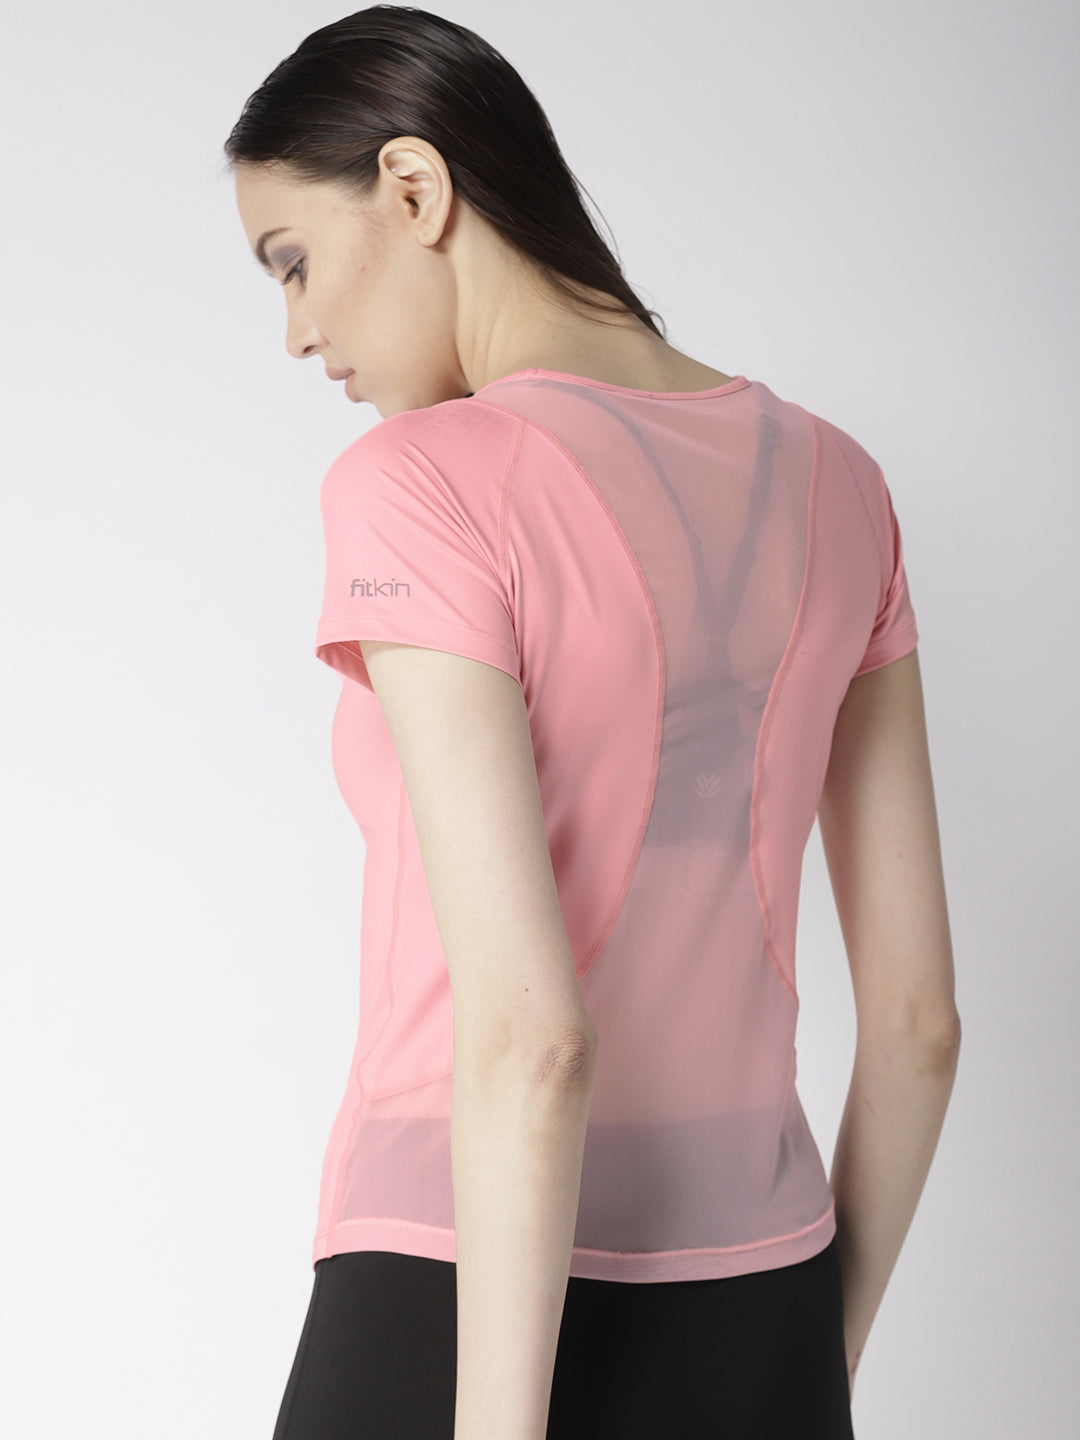 Fitkin Mesh Style Back Short Sleeve Gym T-shirt